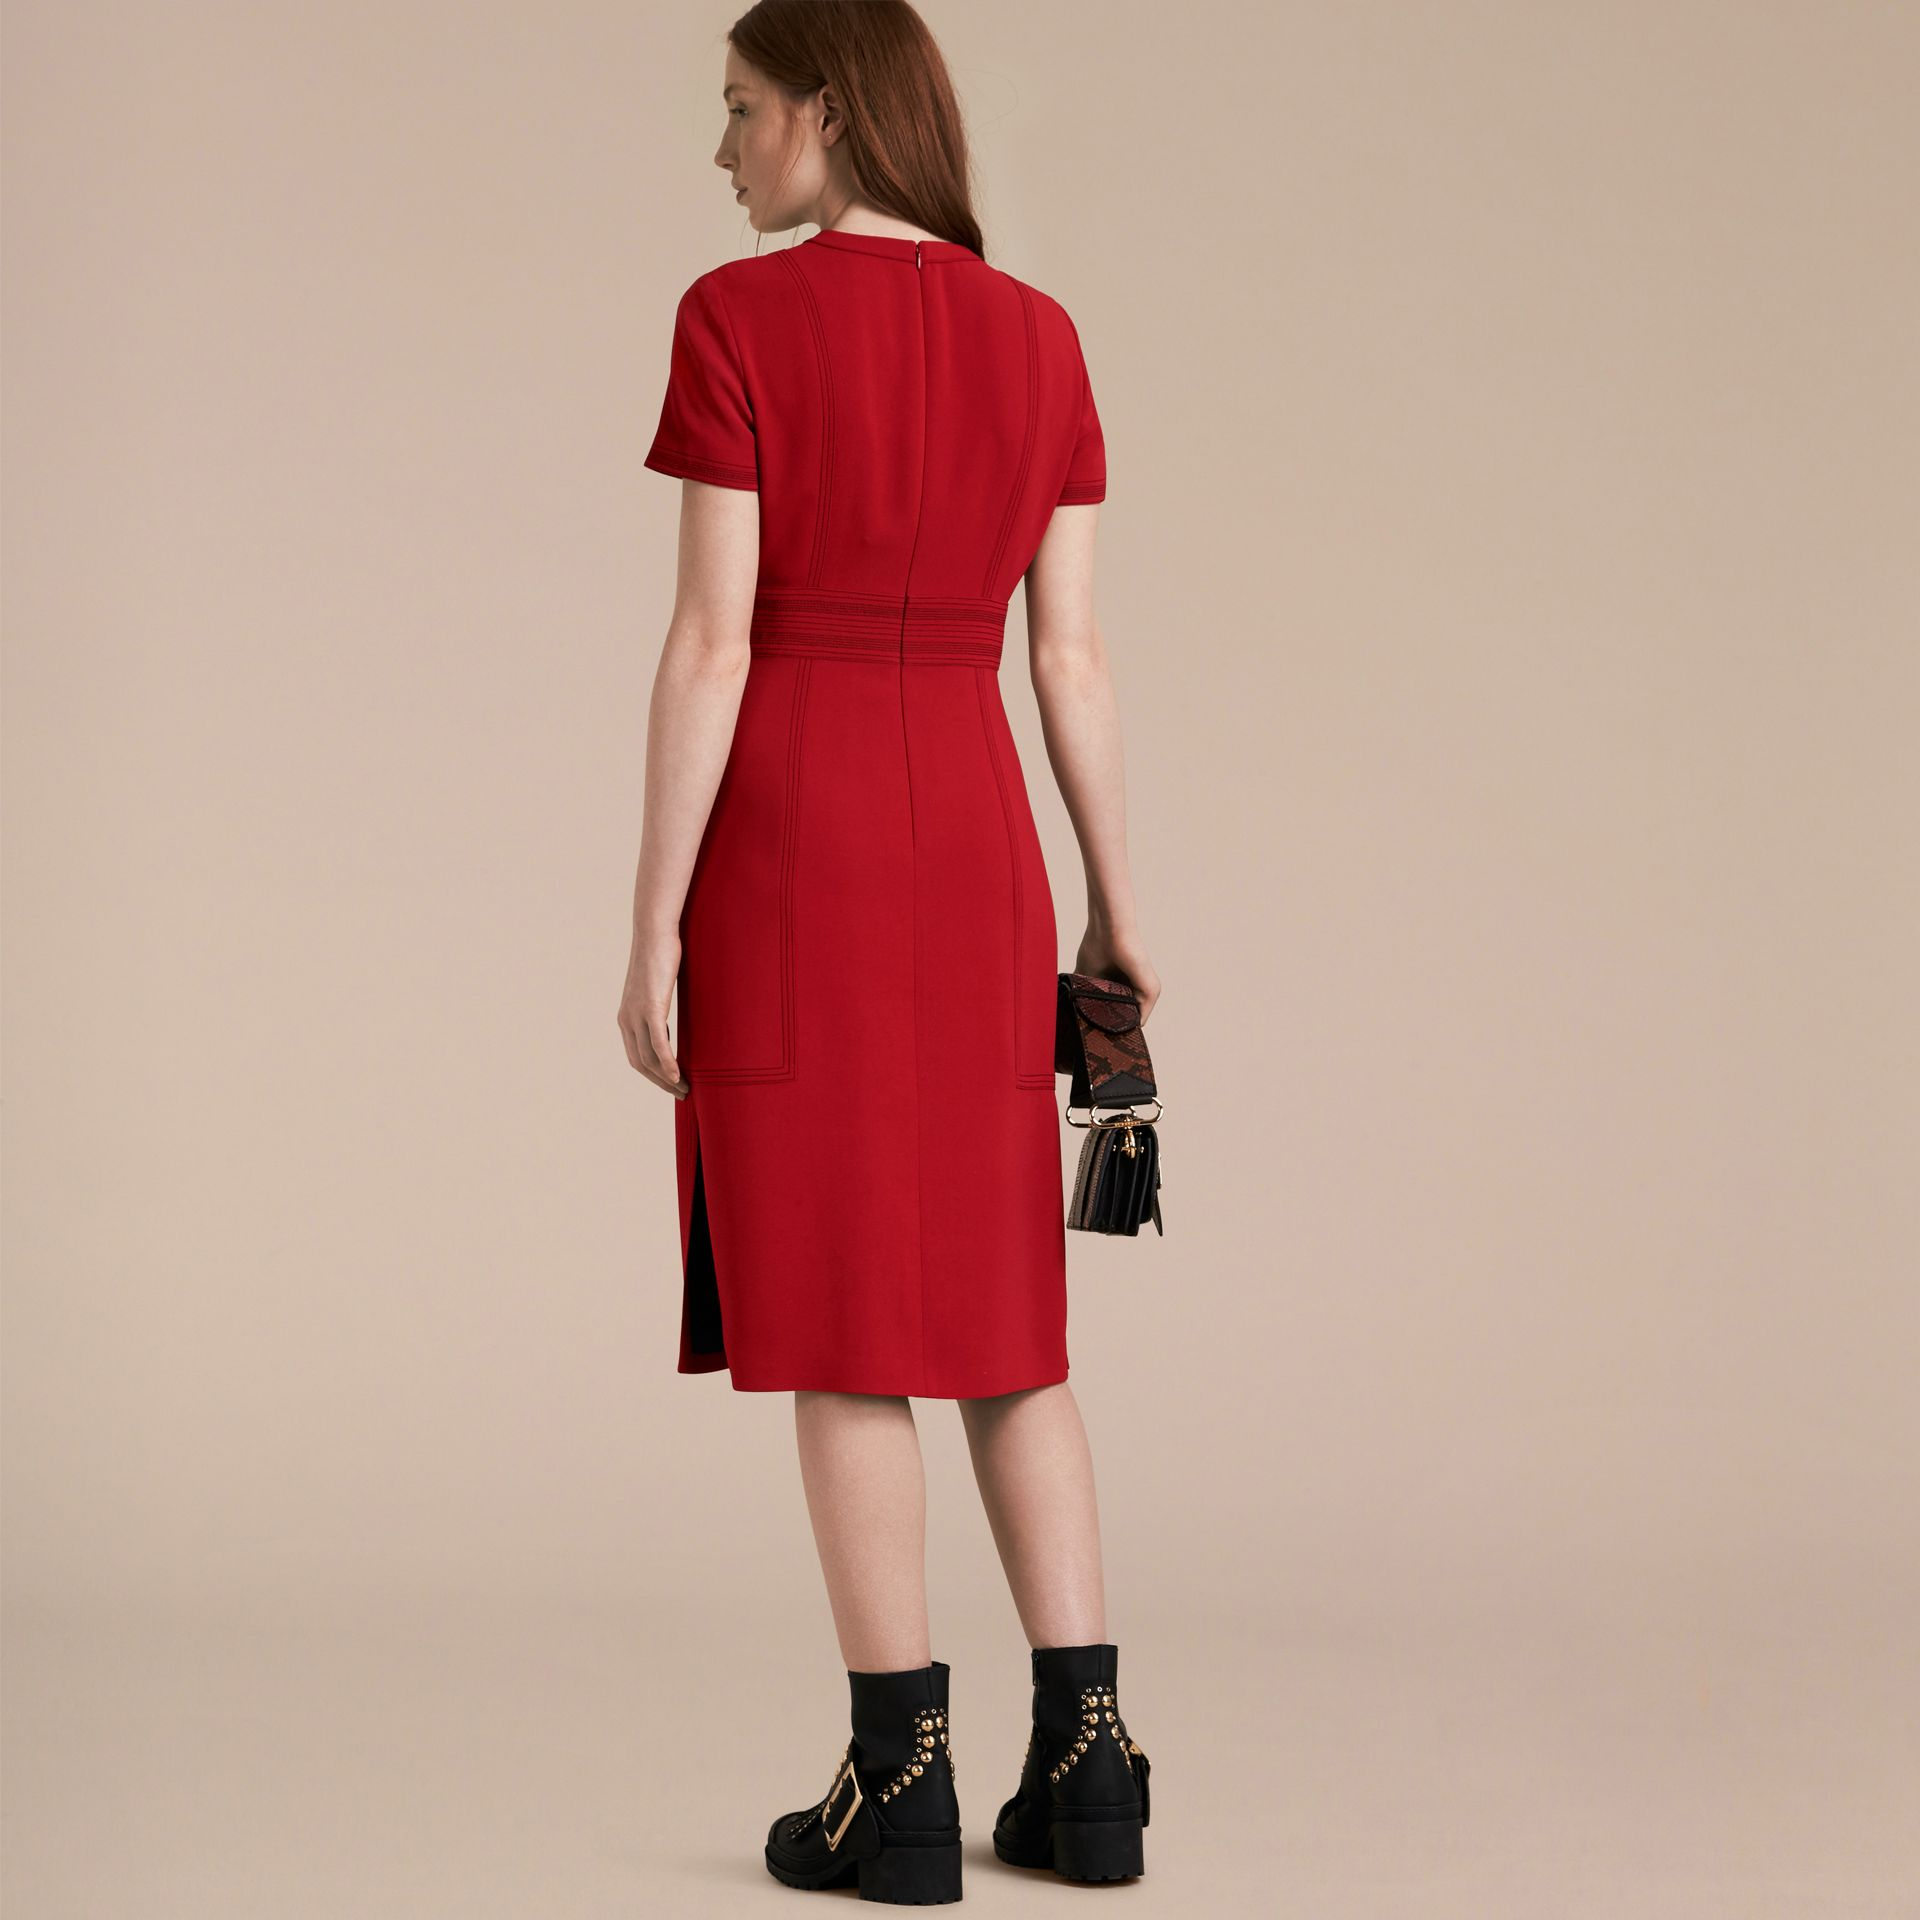 Parade red Short-sleeved Topstitch Detail Shift Dress - gallery image 3